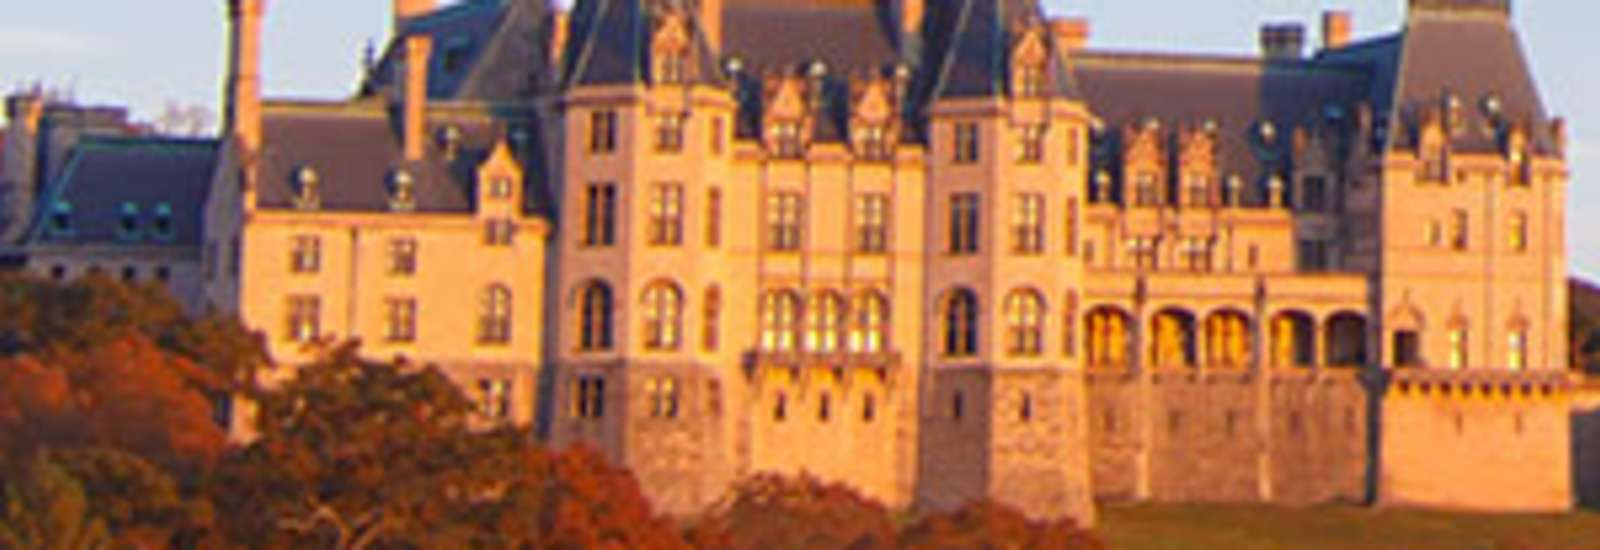 Biltmore in Fall